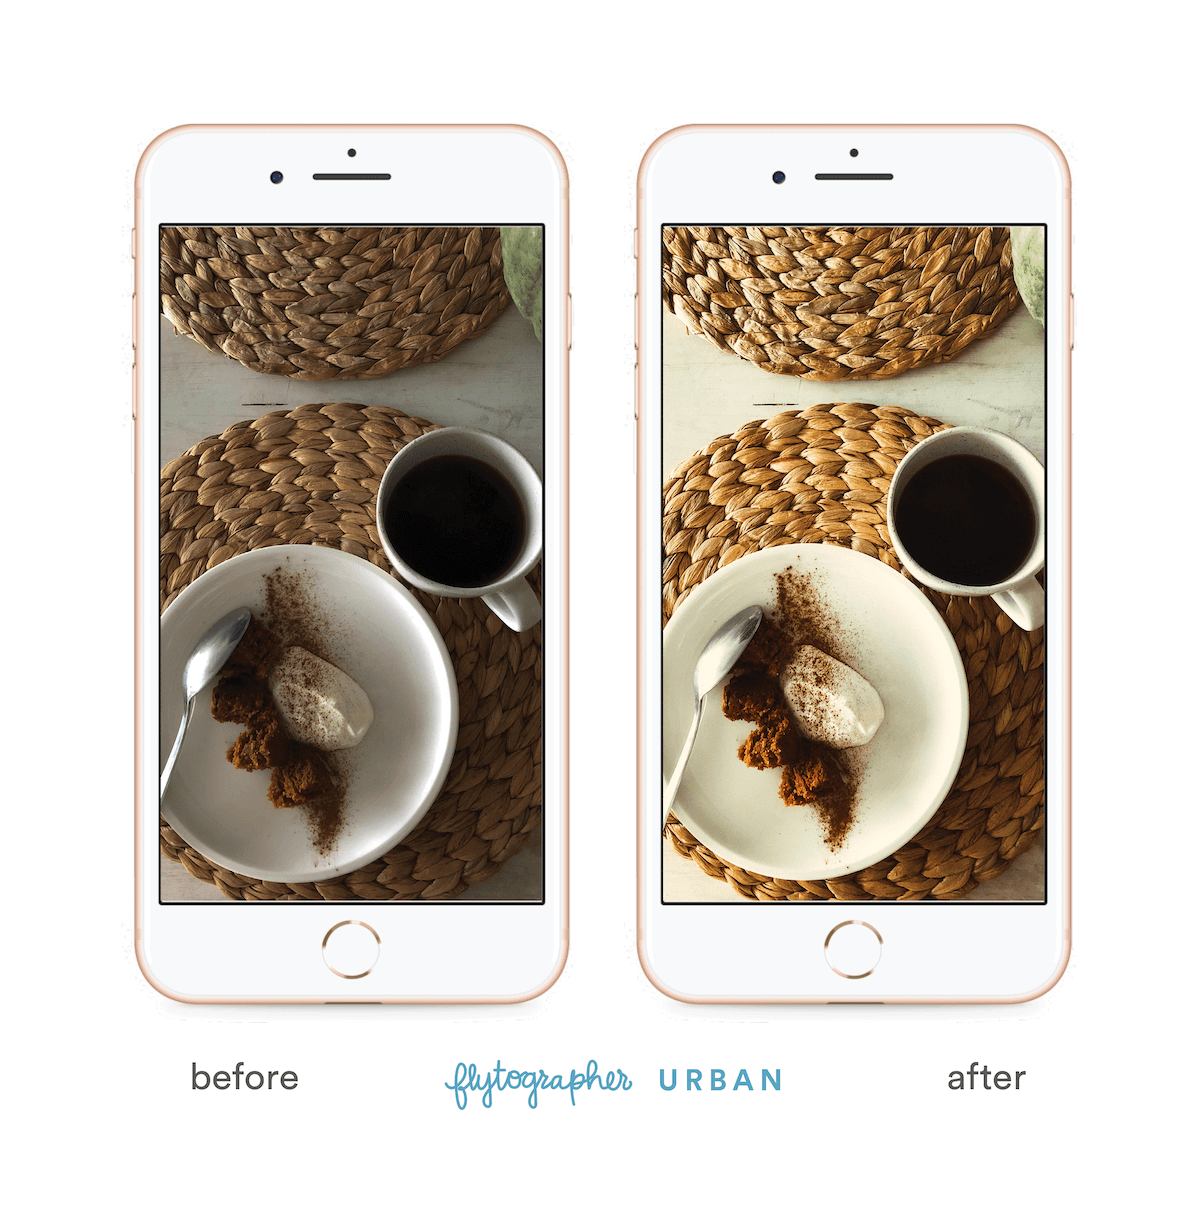 Coffee and yogurt breakfast before and after 'Flytographer Urban' preset